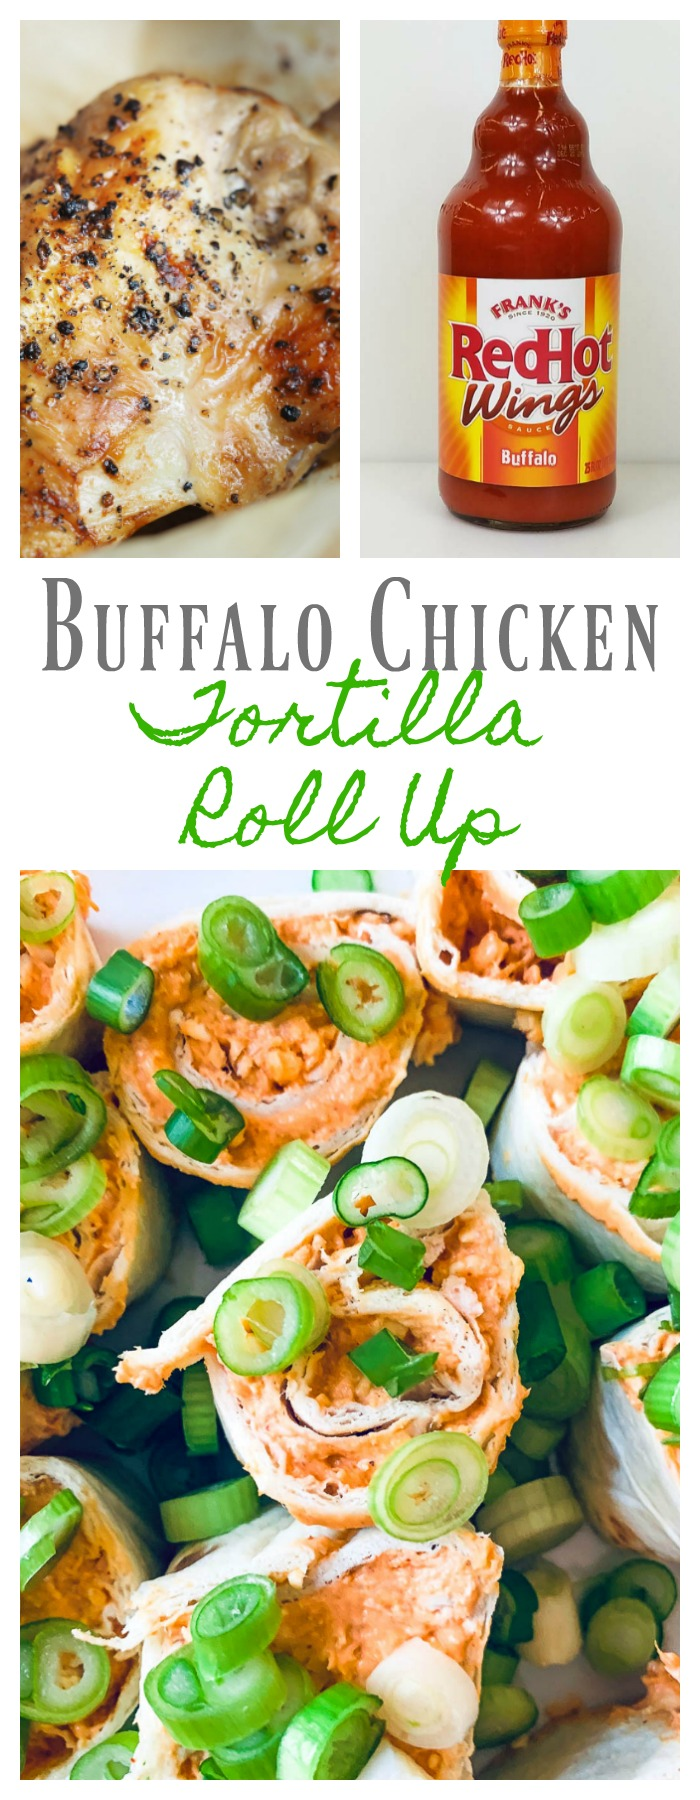 Buffalo Chicken Tortilla Roll Ups-perfect appetizer for a party or super bowl